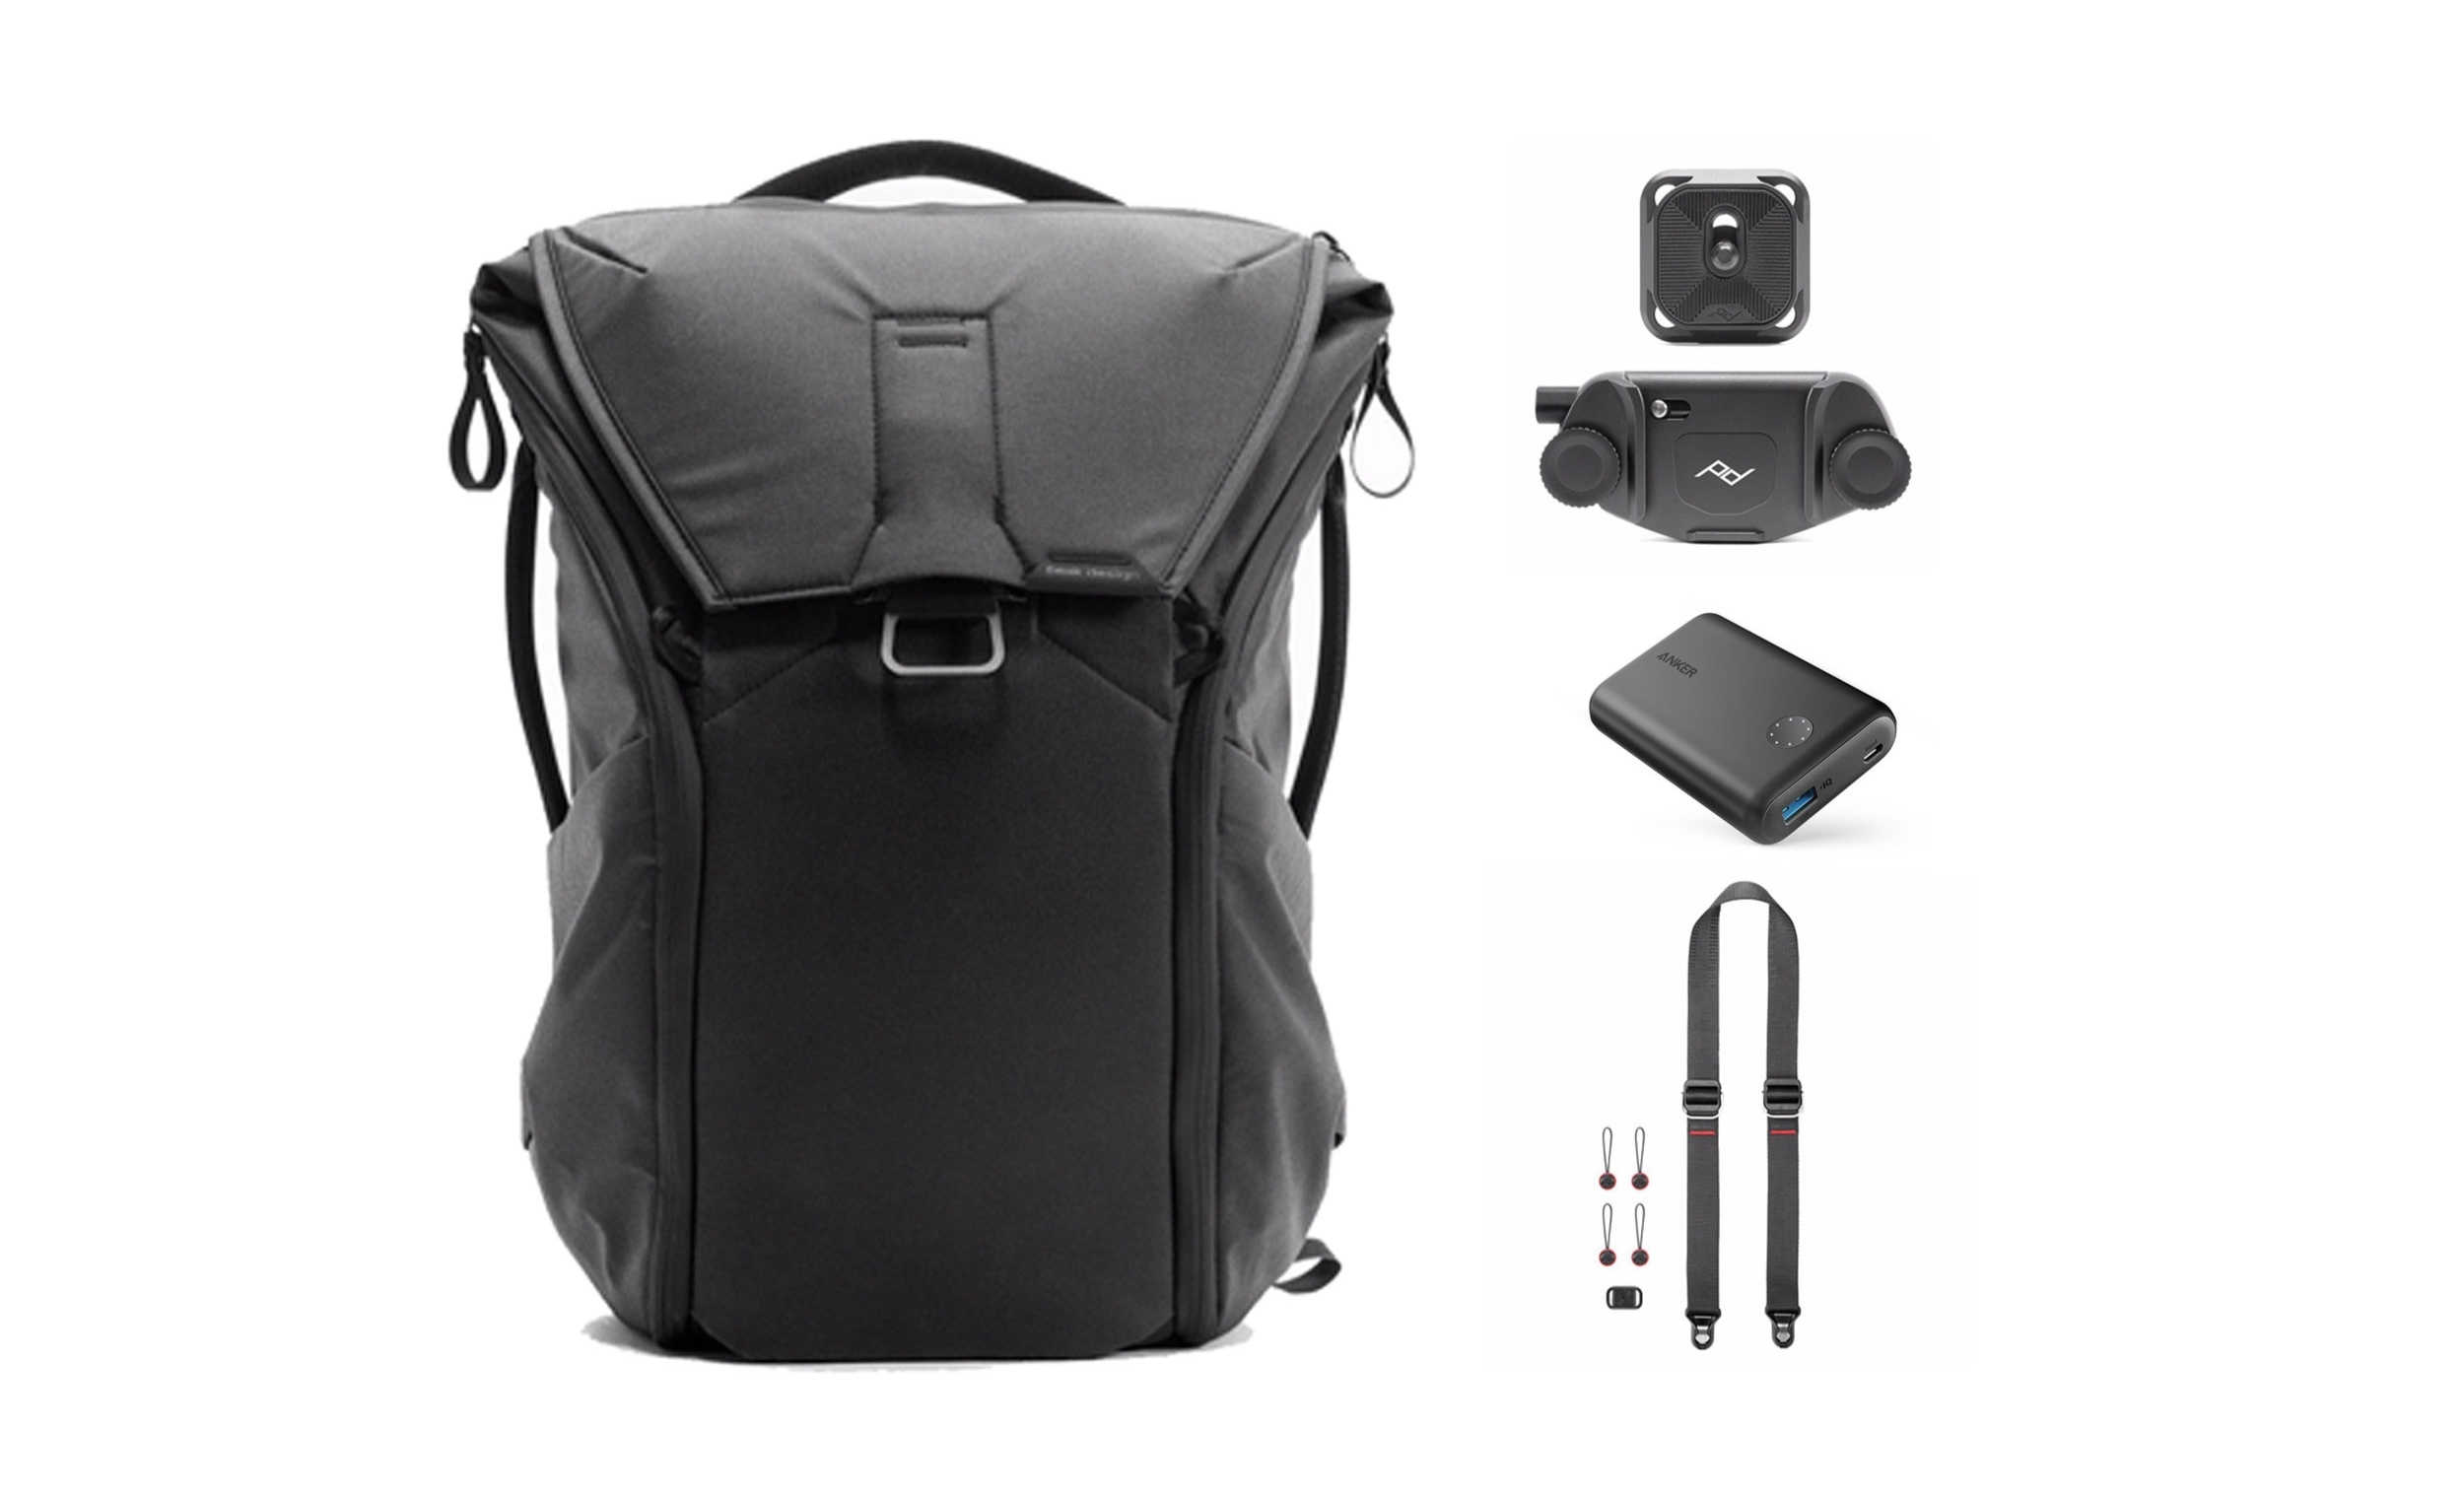 1st prize - Peak Design Urban Kit including:Everyday Backpack (Black)Slide Lite Camera StrapCapture Camera ClipAnker PowerCore II 10,000mAh portable battery